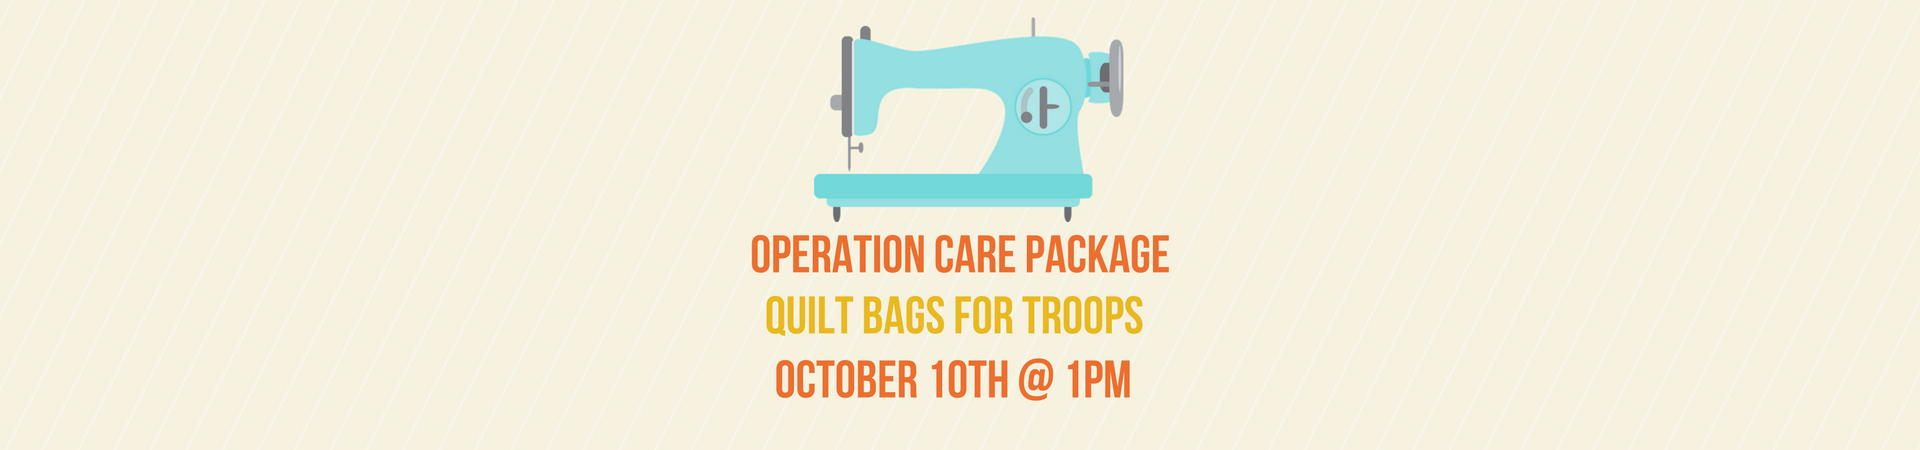 Operation-Care-Package